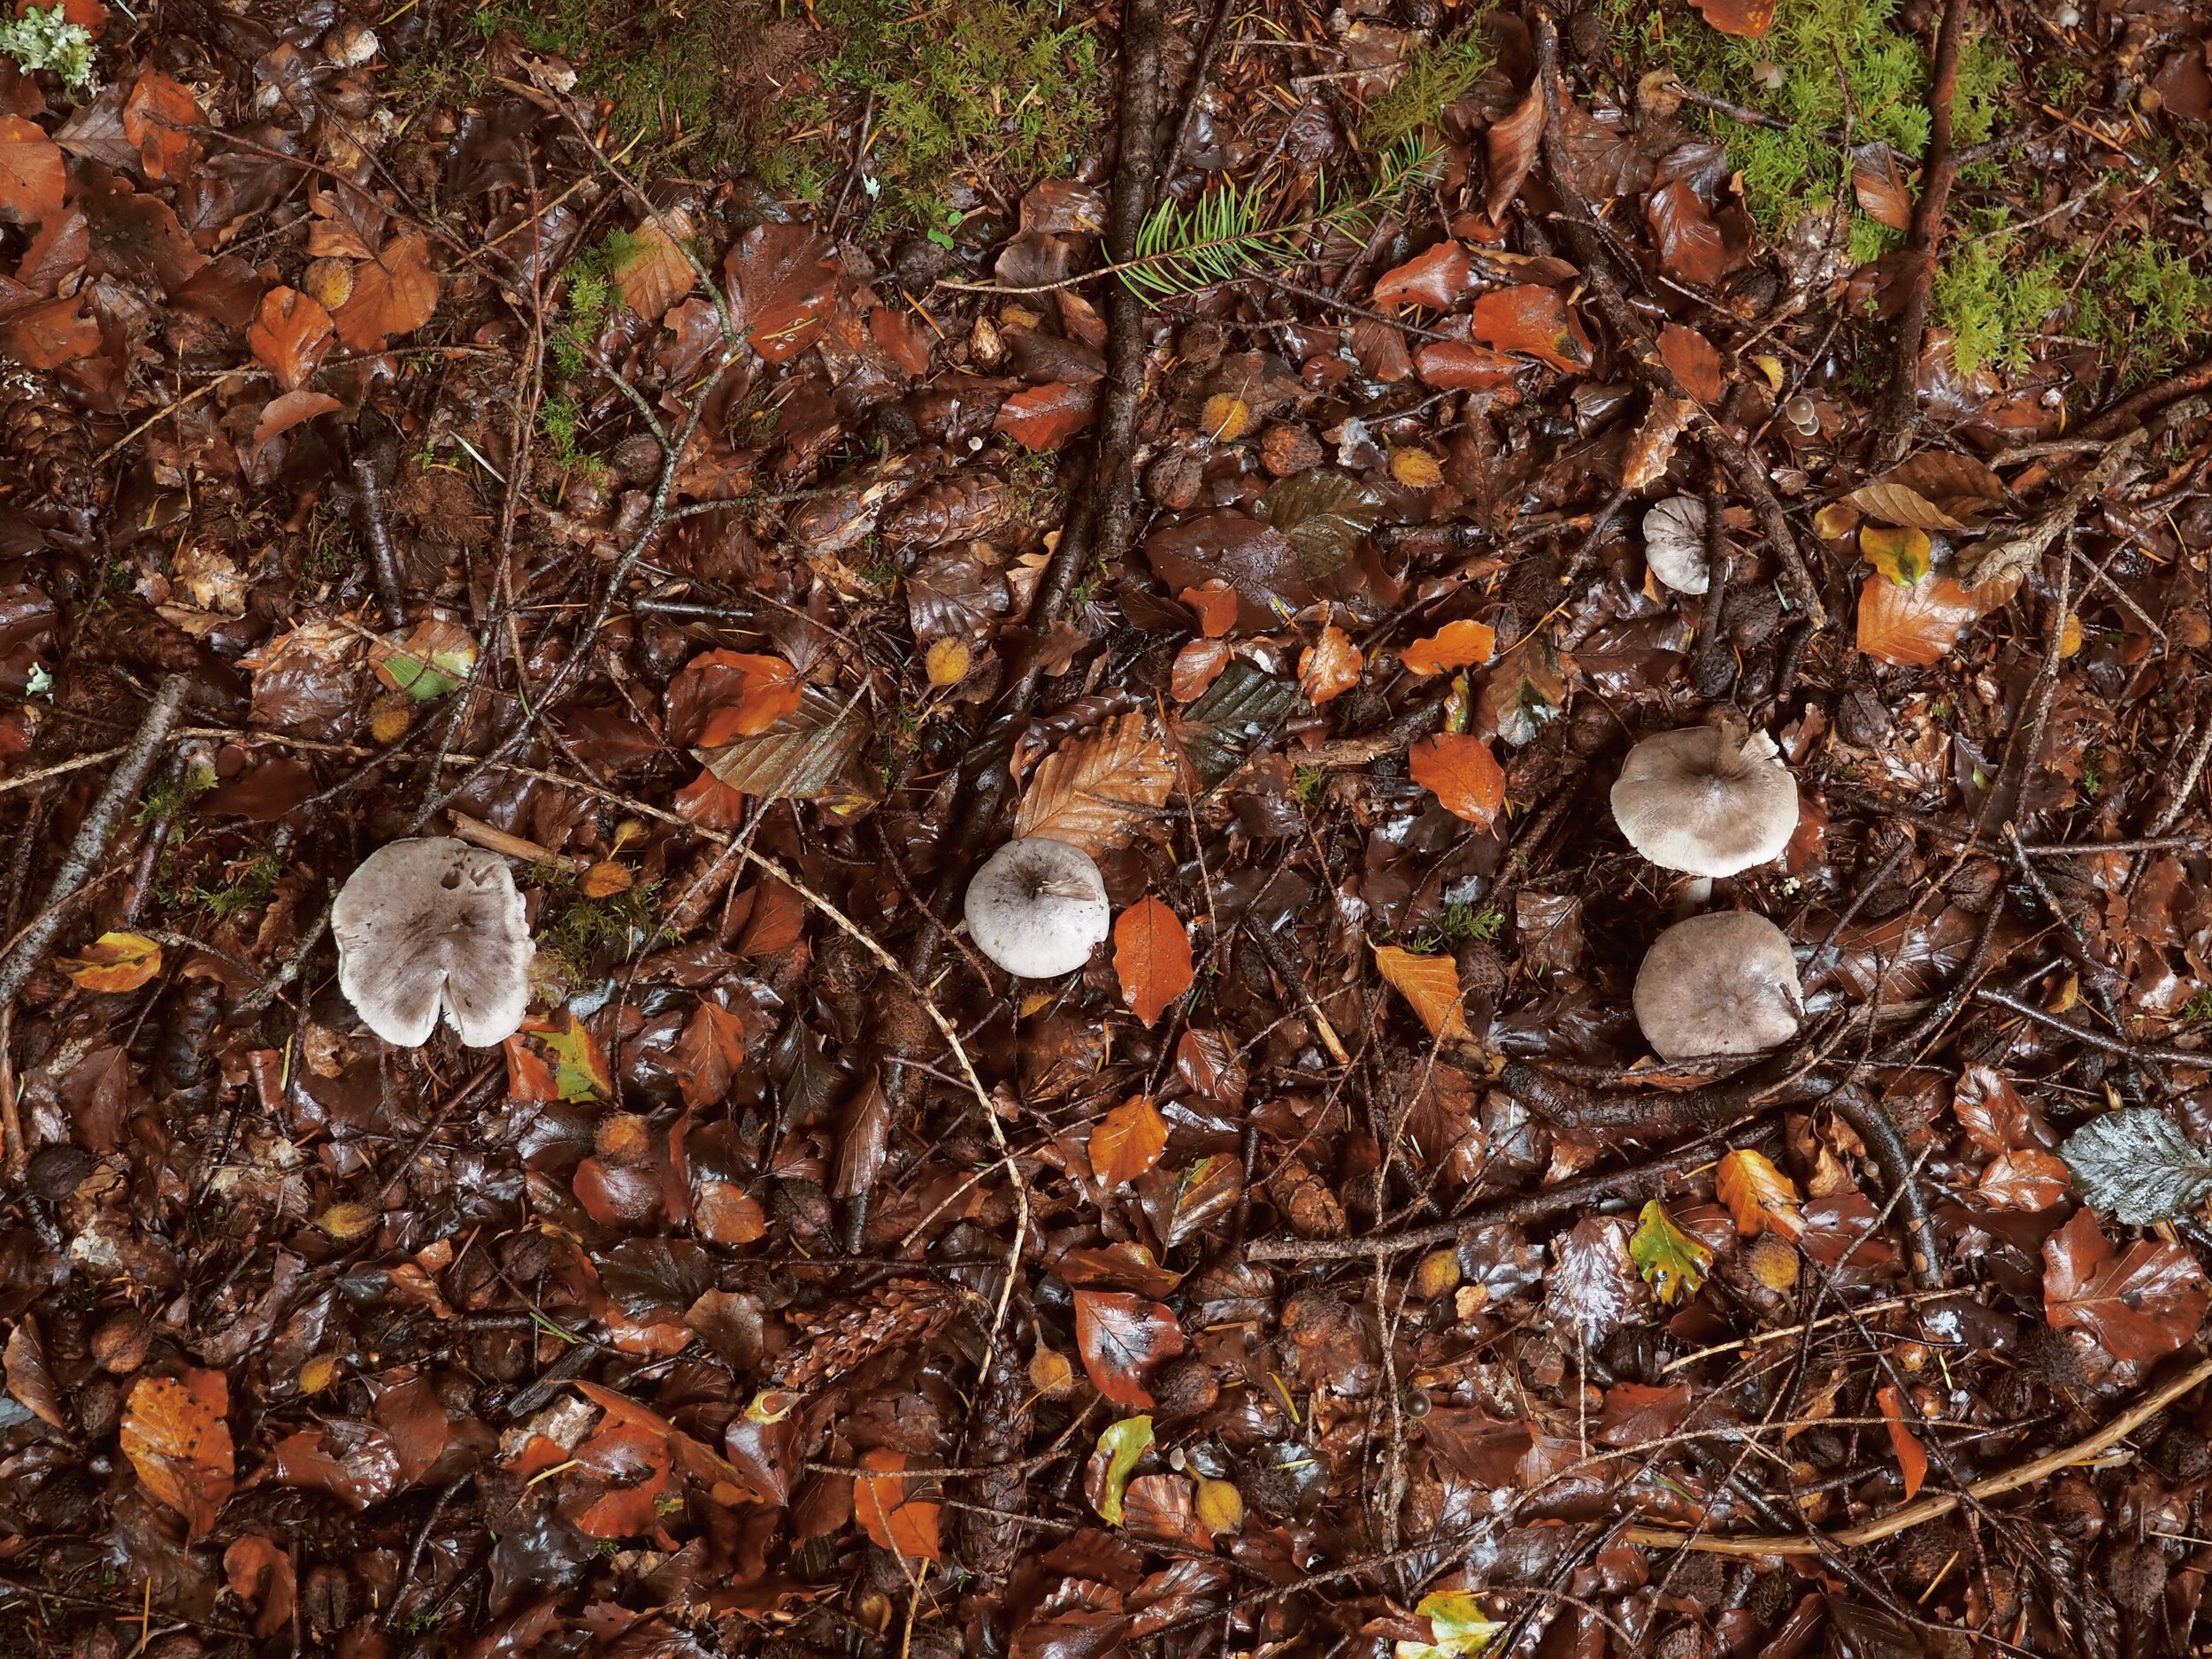 - There are many set walks to explore or you can test your orienteering skills and find your own path!On our walk we certainly felt like Autumn had well and truly begun.Mushrooms, berries, nuts and pine cones littered the forest floor with natural confetti.